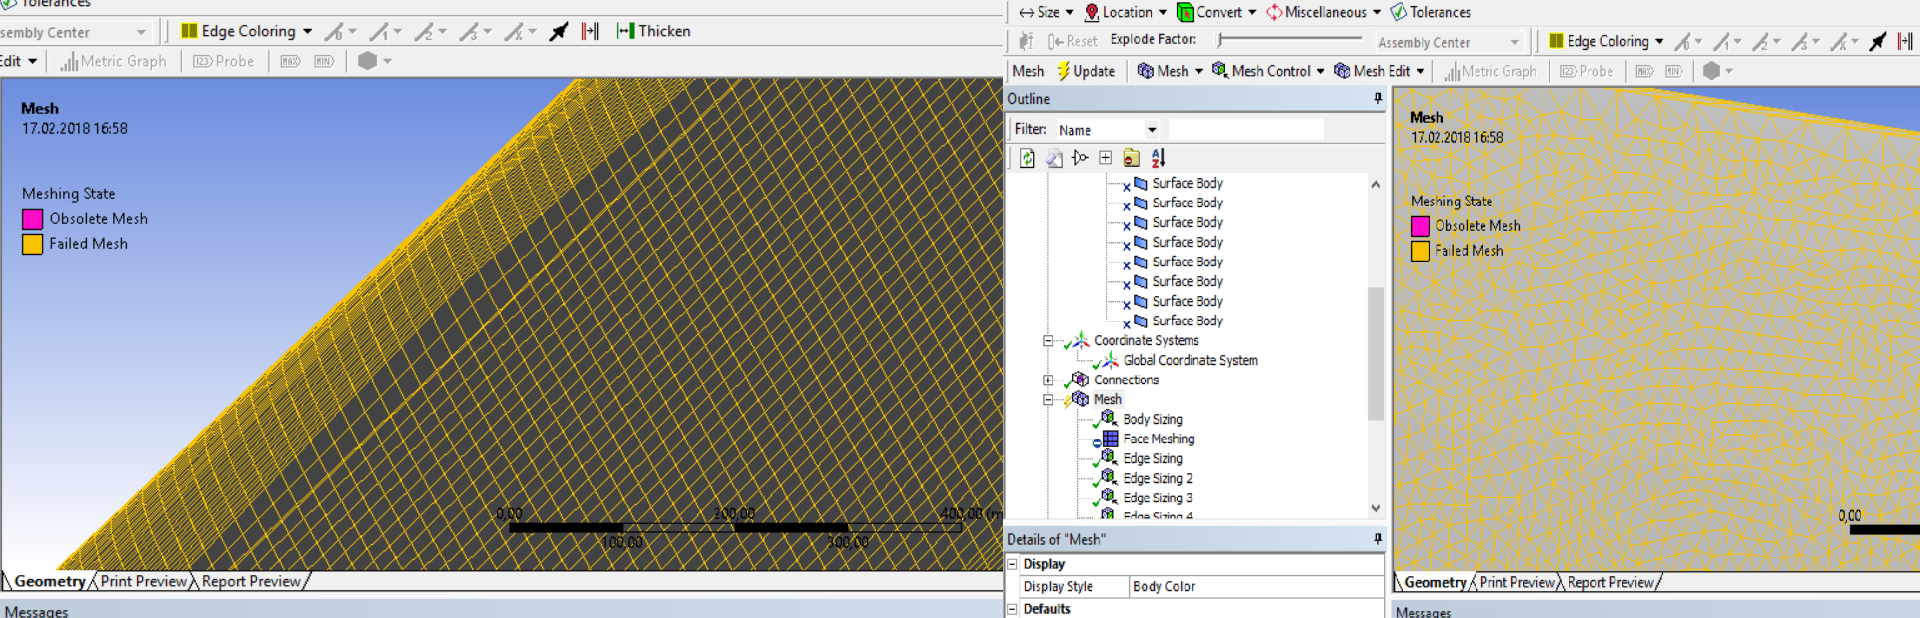 Ansys wing meshing problem   GrabCAD Questions